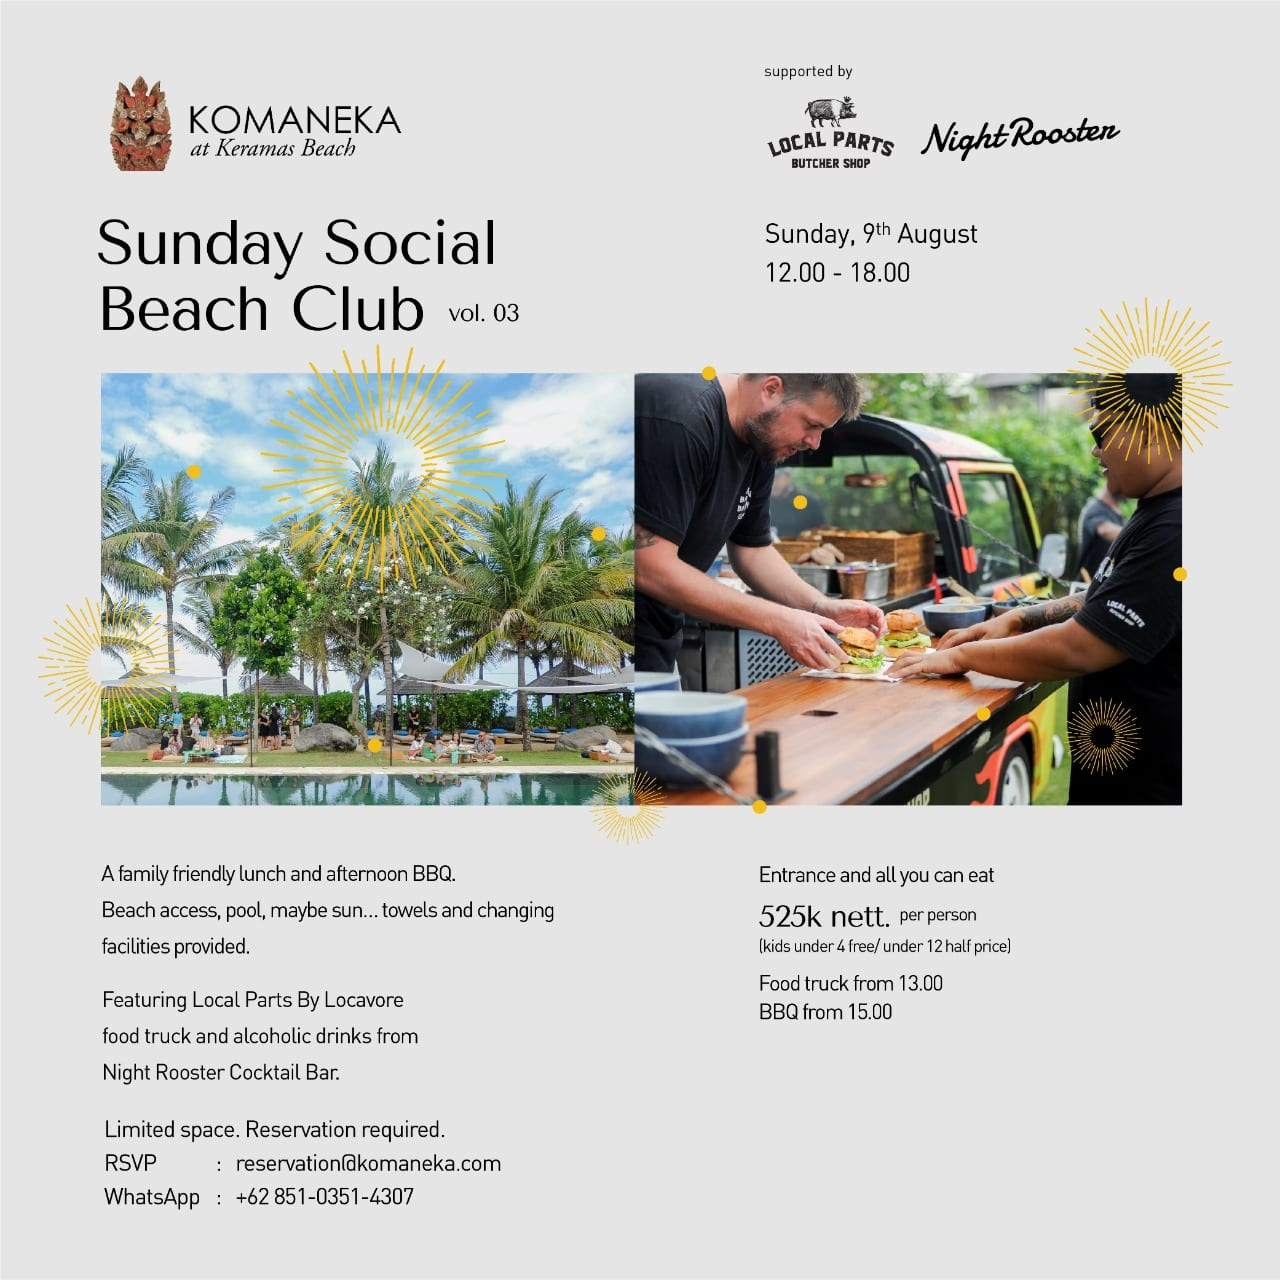 Sunday Social Beach Club Vol. 03 @ Komaneka at Keramas Beach